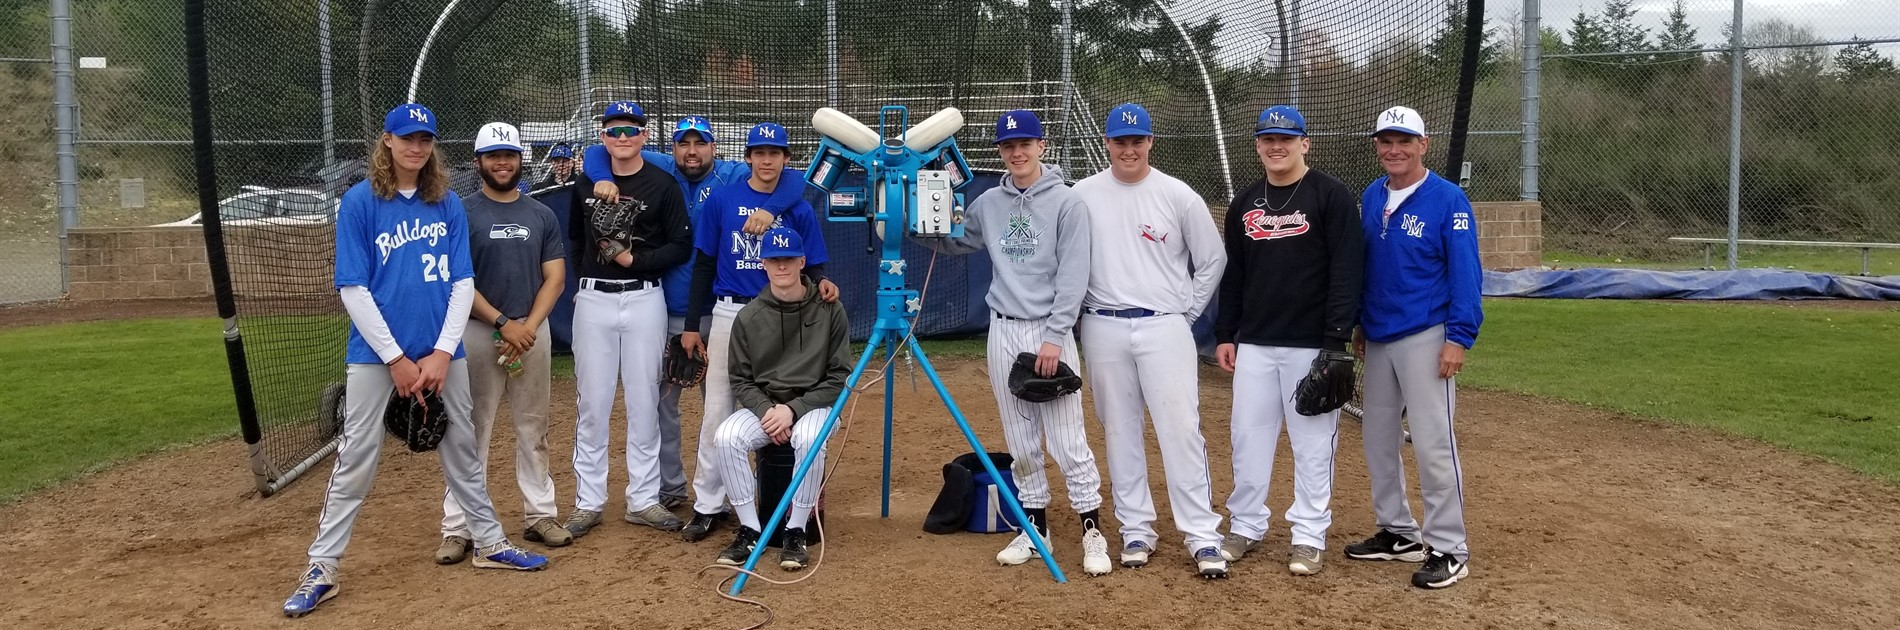 NMHS Boys Baseball Varsity & New Pitching Machine